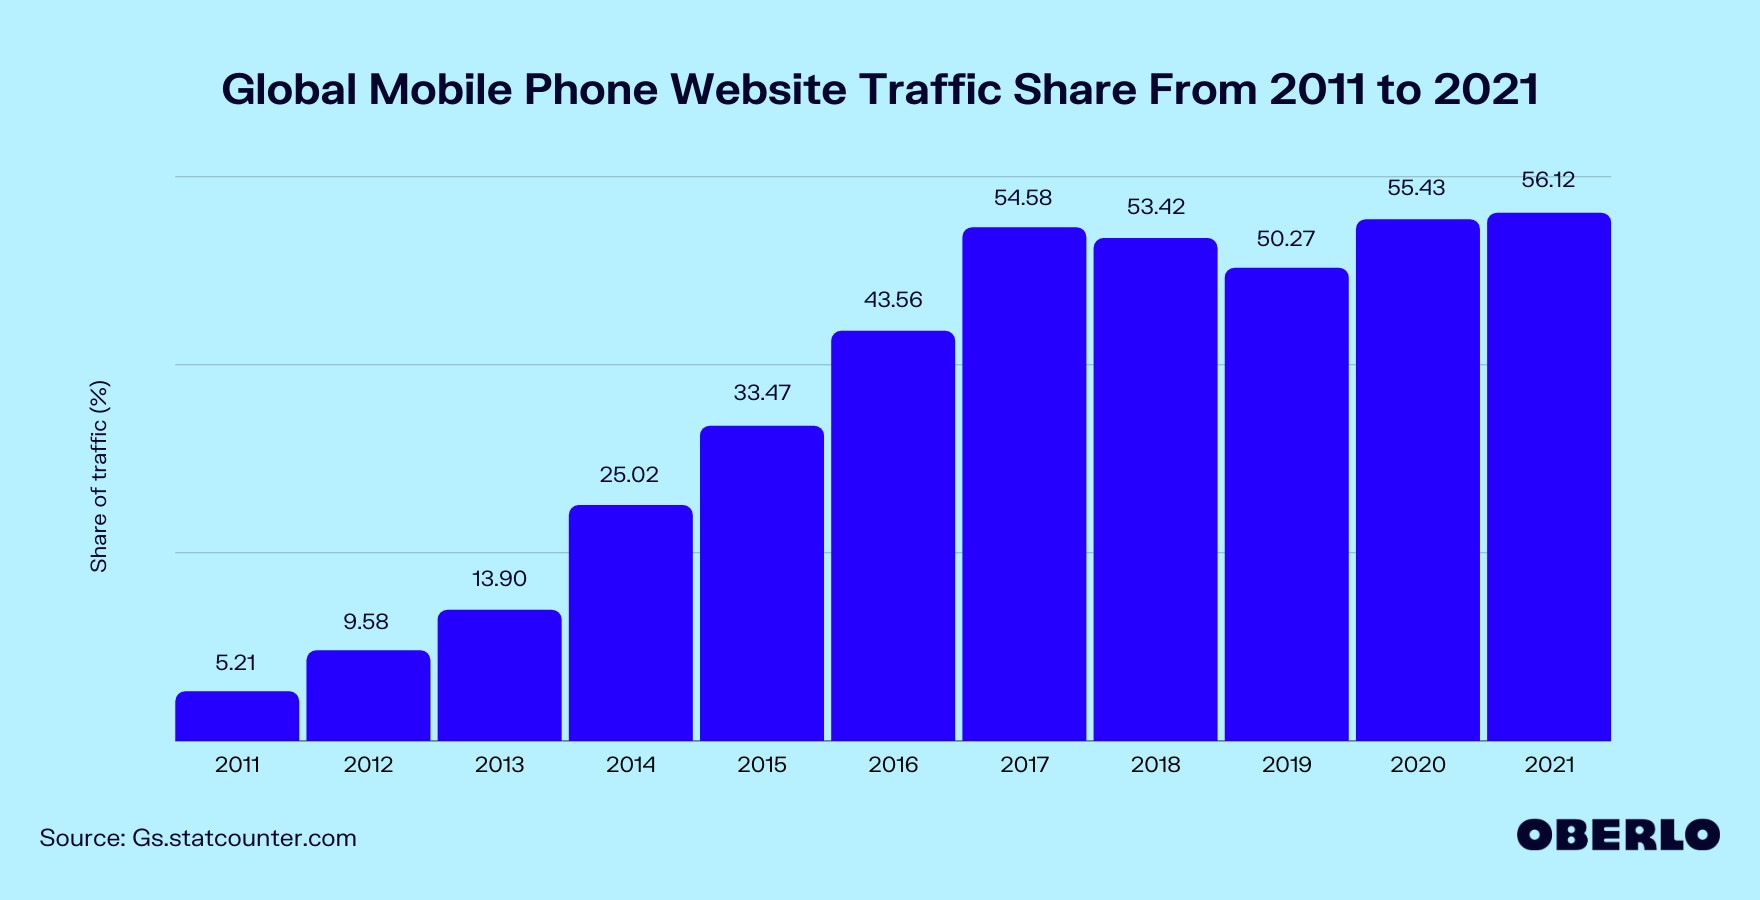 Global Mobile Phone Website Traffic Share From 2011 to 2021 graphic